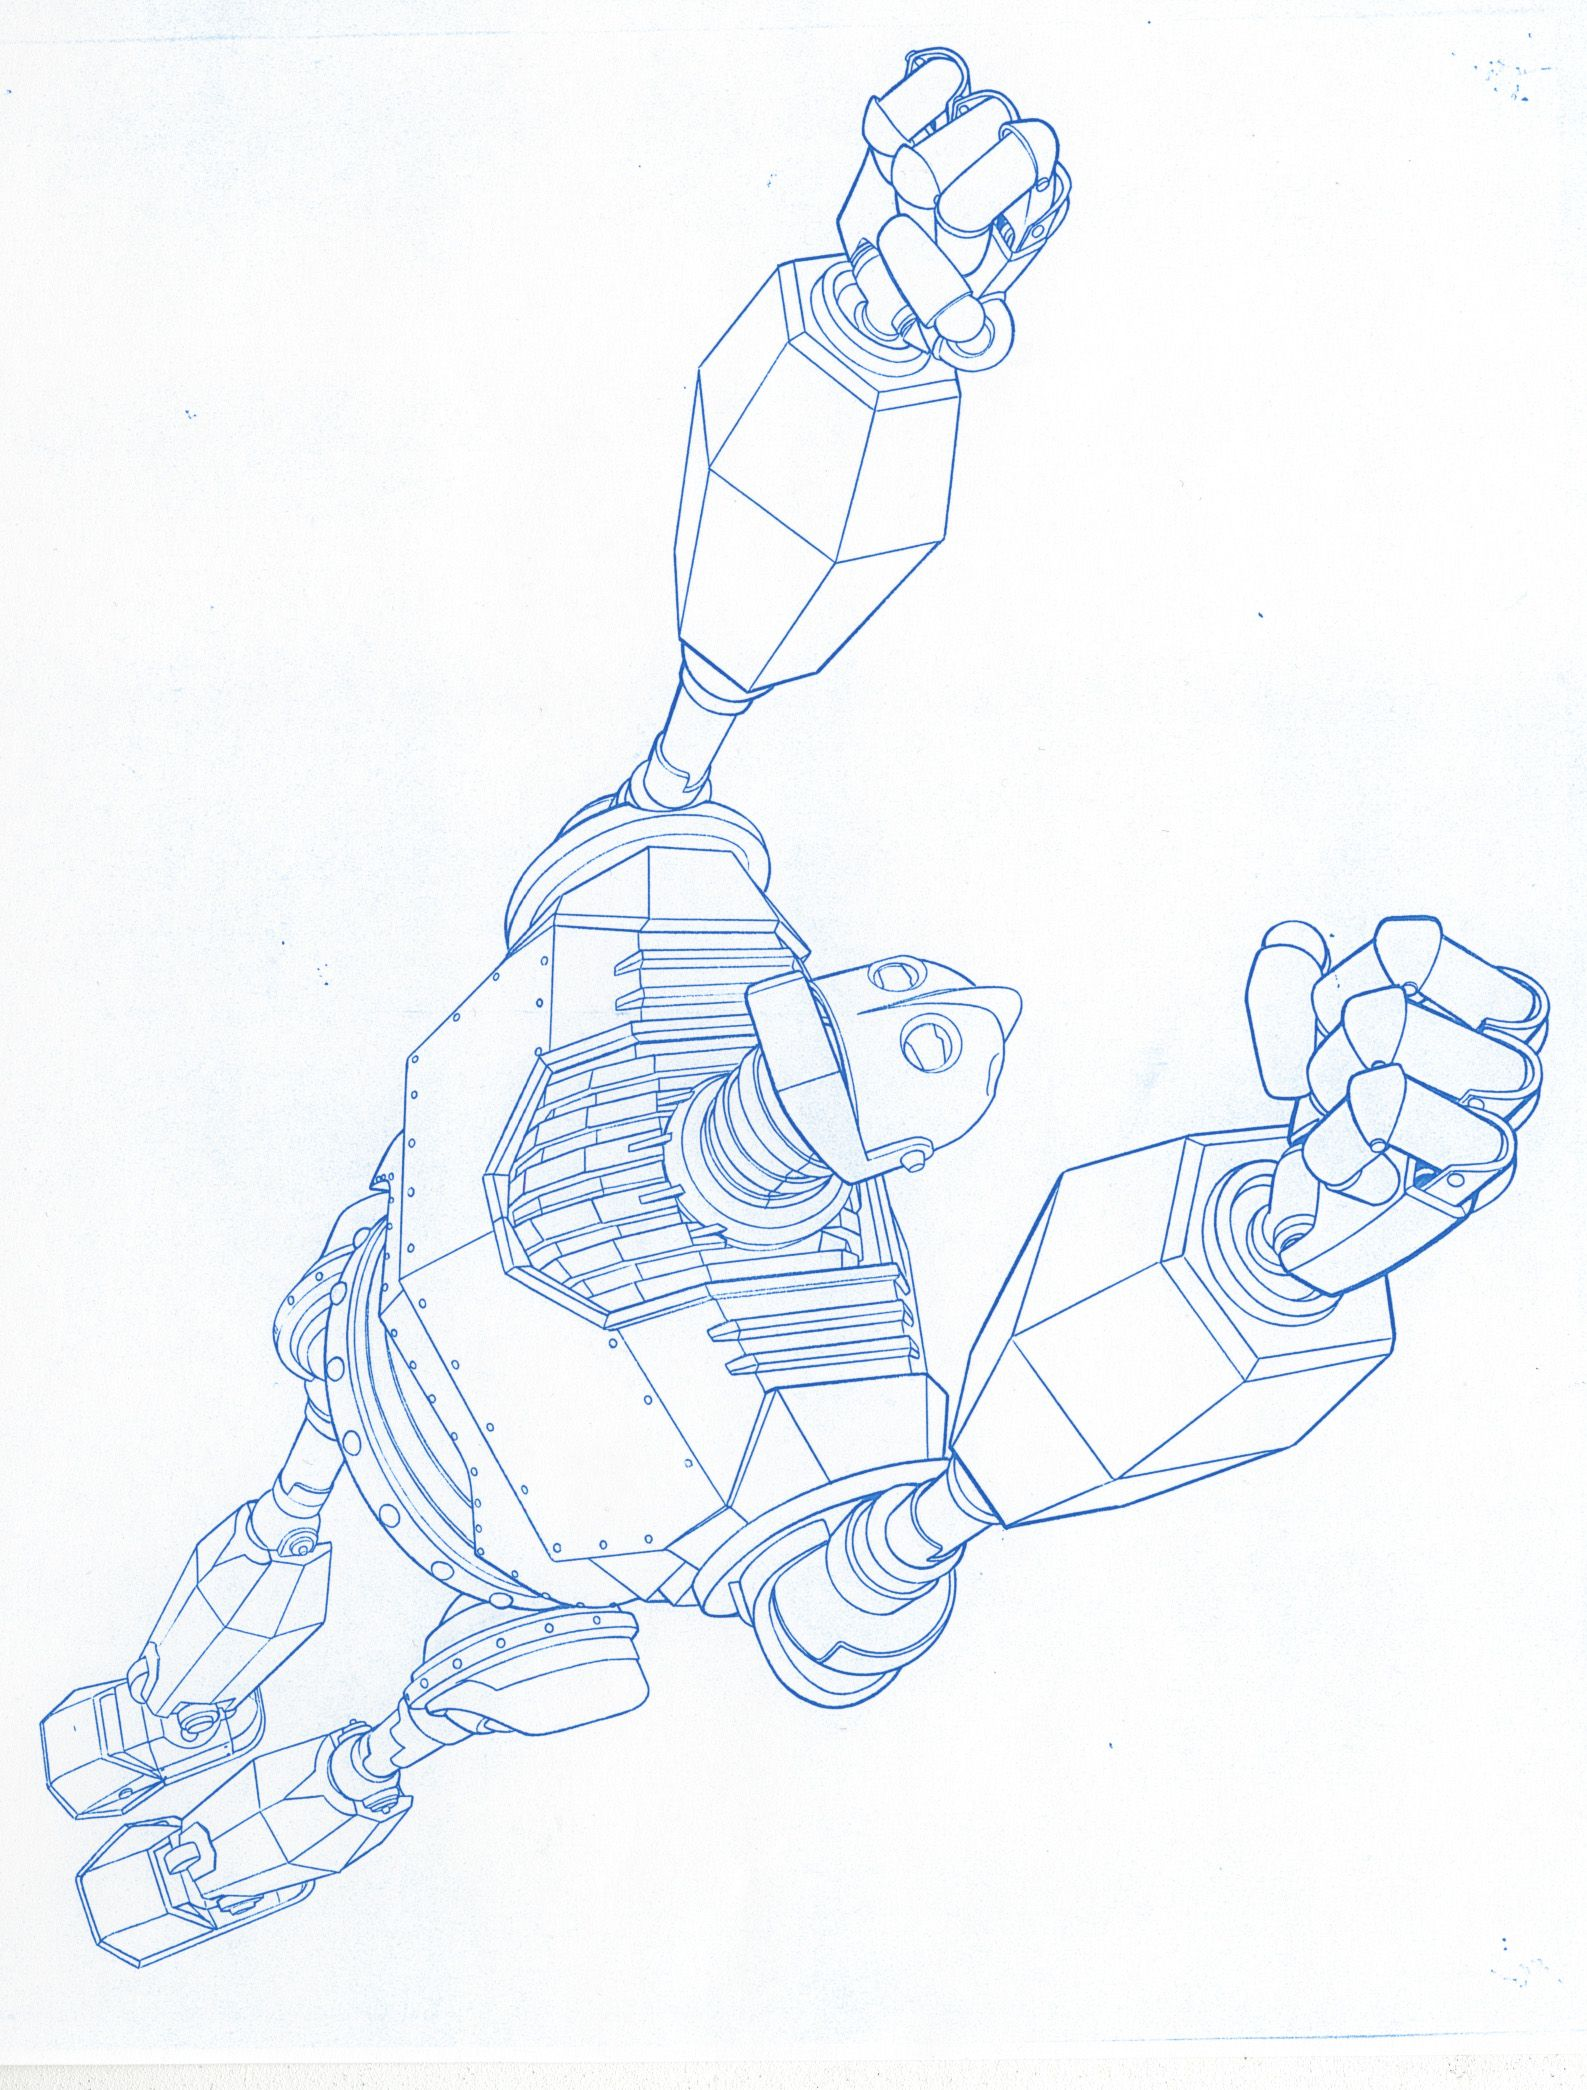 Iron Giant Flight By Jerome K Moore On Deviantart The Iron Giant Robot Concept Art Character Design